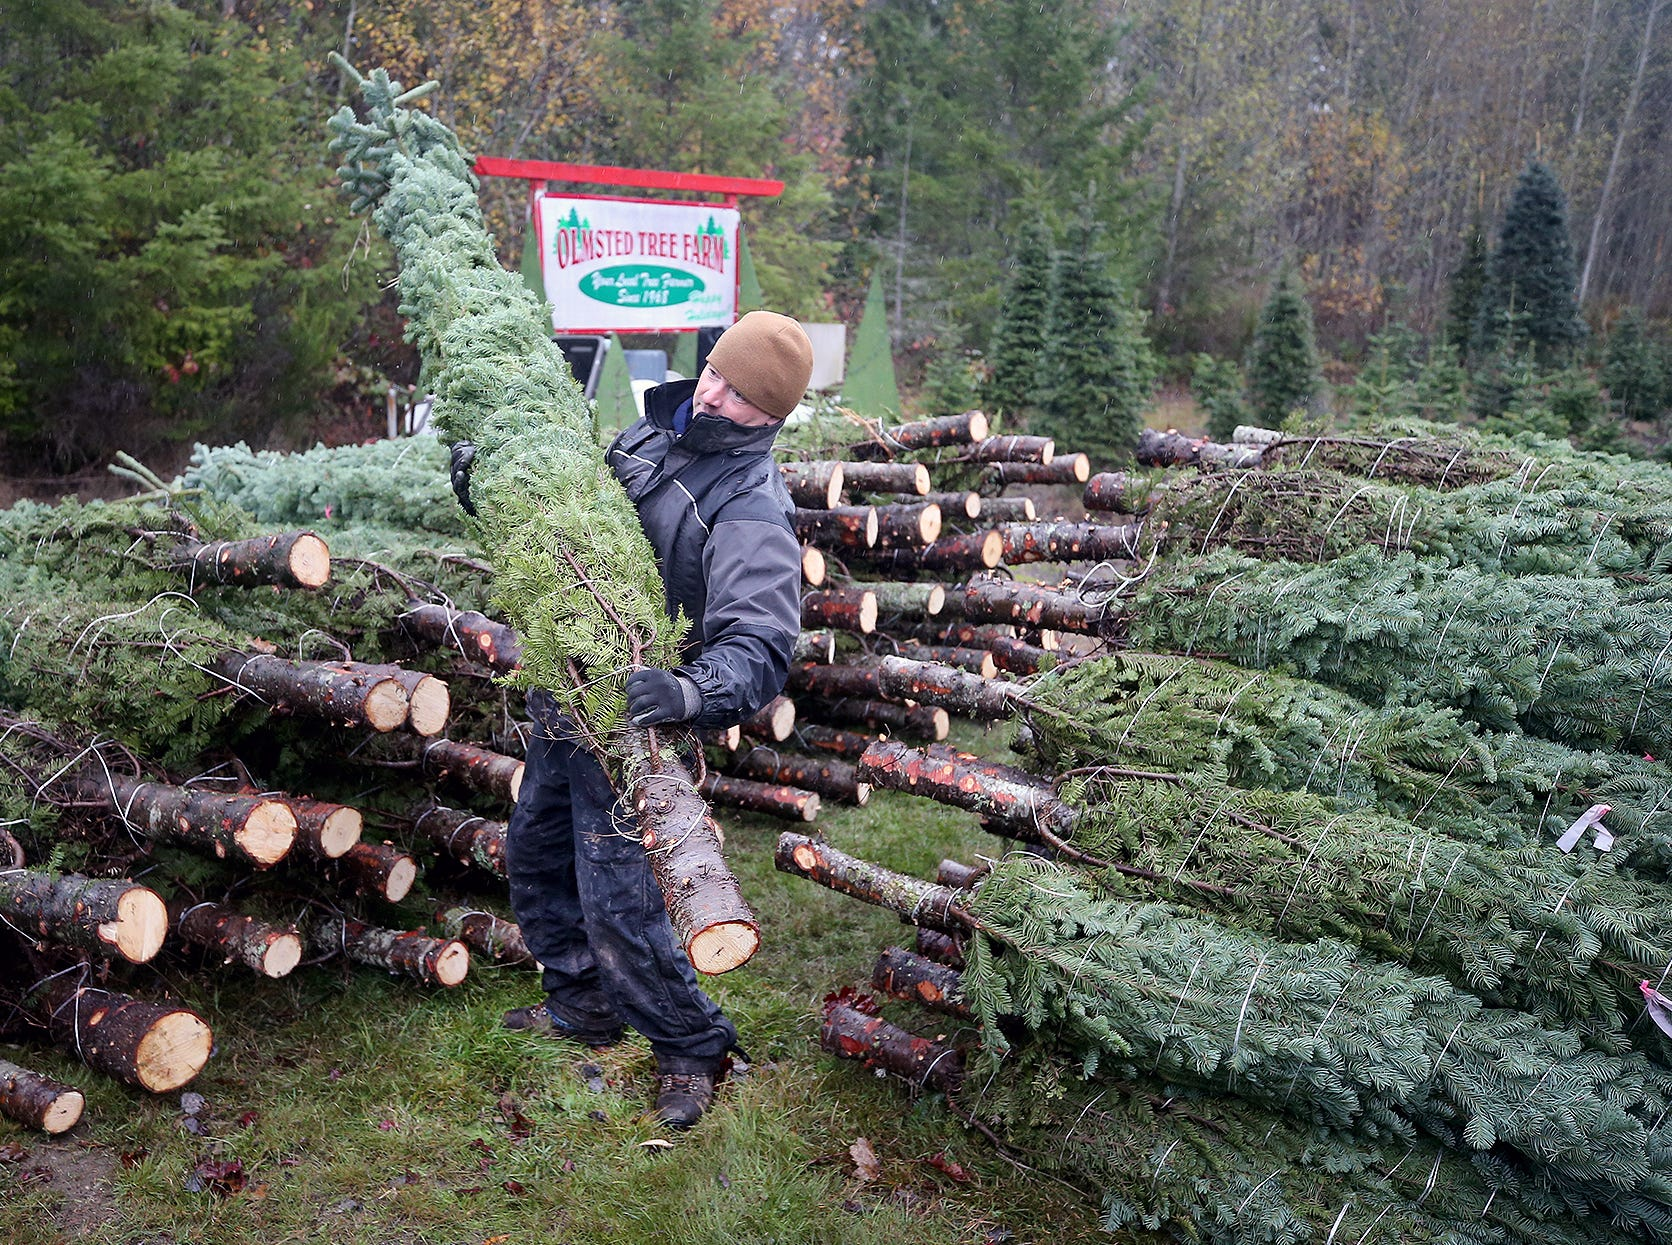 Josh Olmsted lifts a large  cut Christmas tree to a truck to be loaded for a run to a Kitsap lot on Wednesday, November, 21, 2018 at the tree farm in Poulsbo. The family has run a tree business for 50 years. Friday, November 23, is the opening day for the Poulsbo U-cut tree farm.